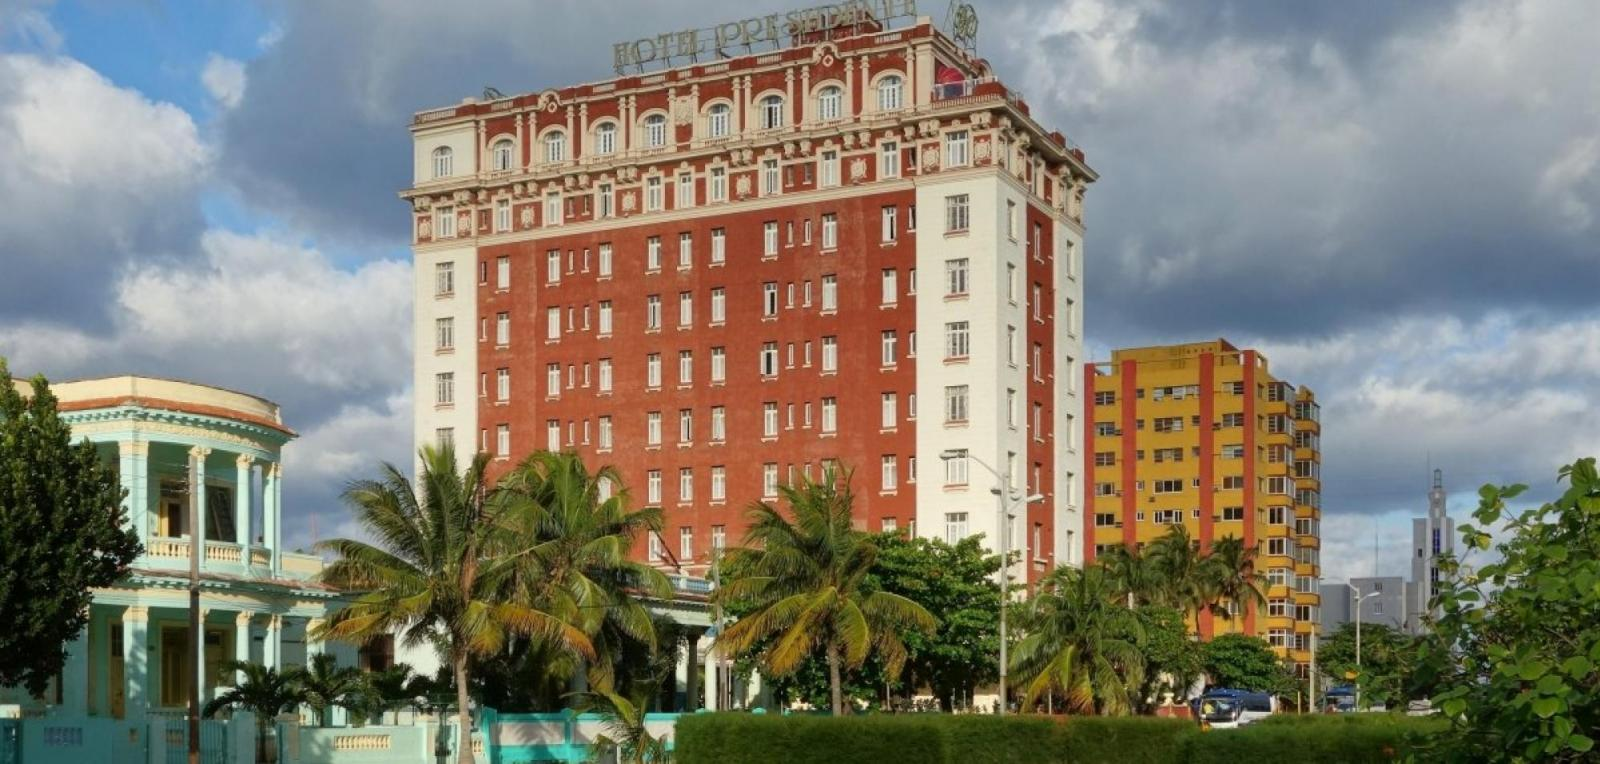 Hotel Presidente: that skyscraper continues to make history